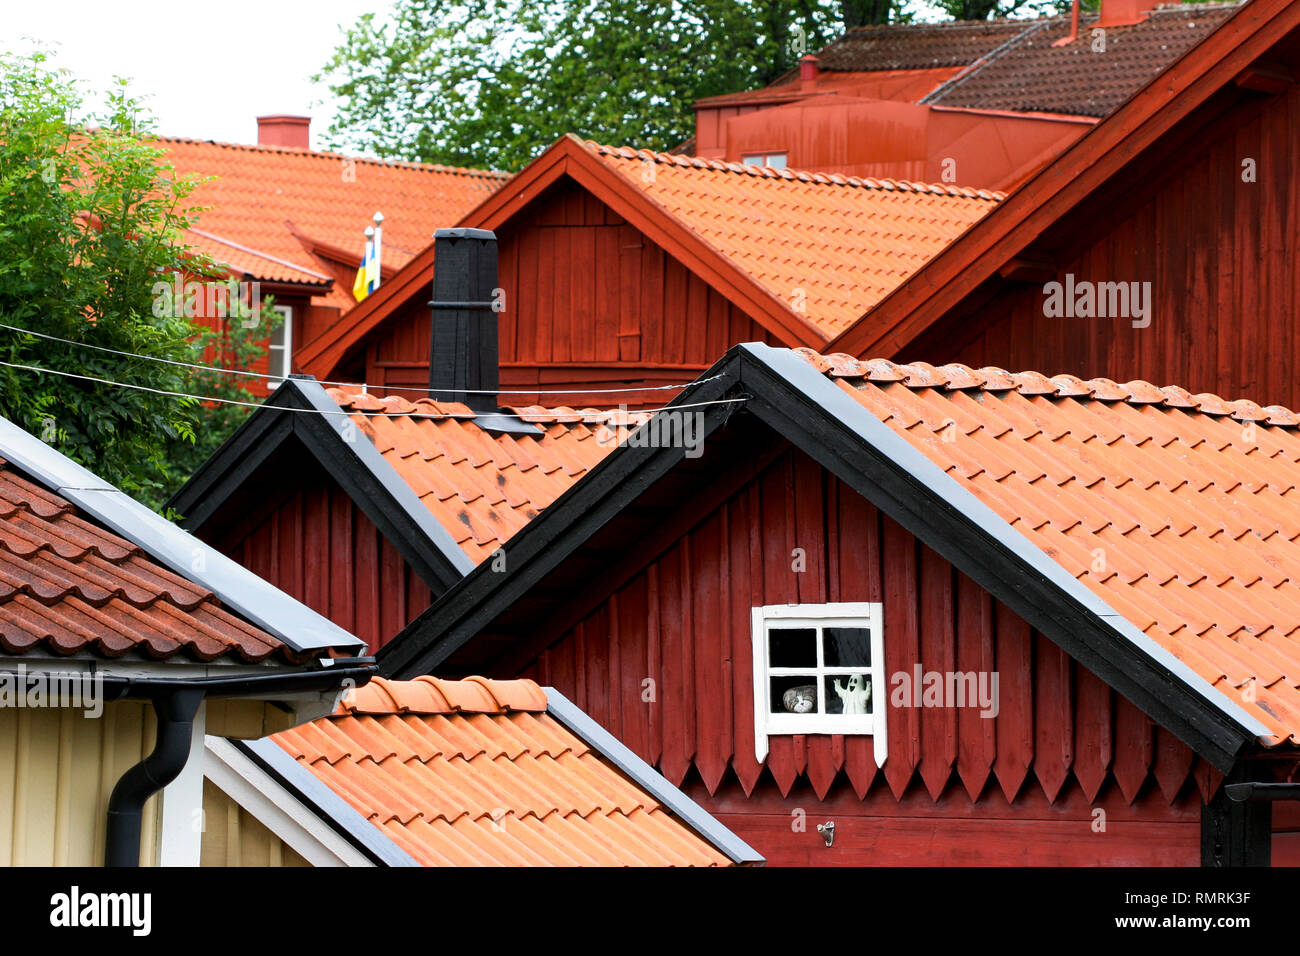 EKSJÖ THE WOODEN TOWN gable and roof - Stock Image